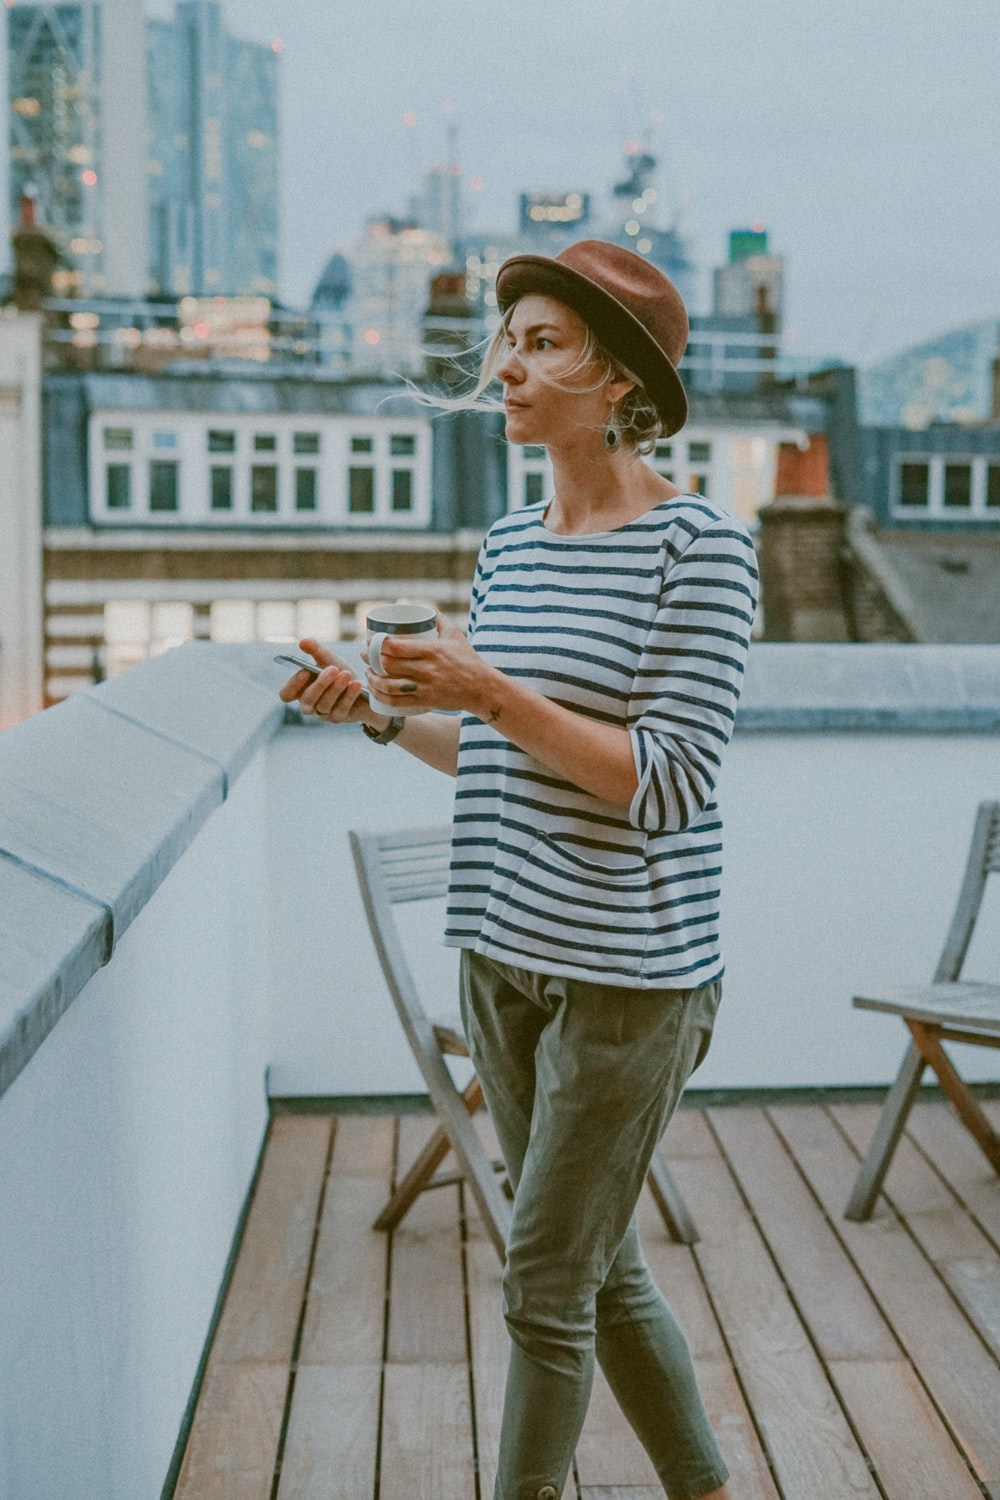 woman in white and black striped shirt holding mug